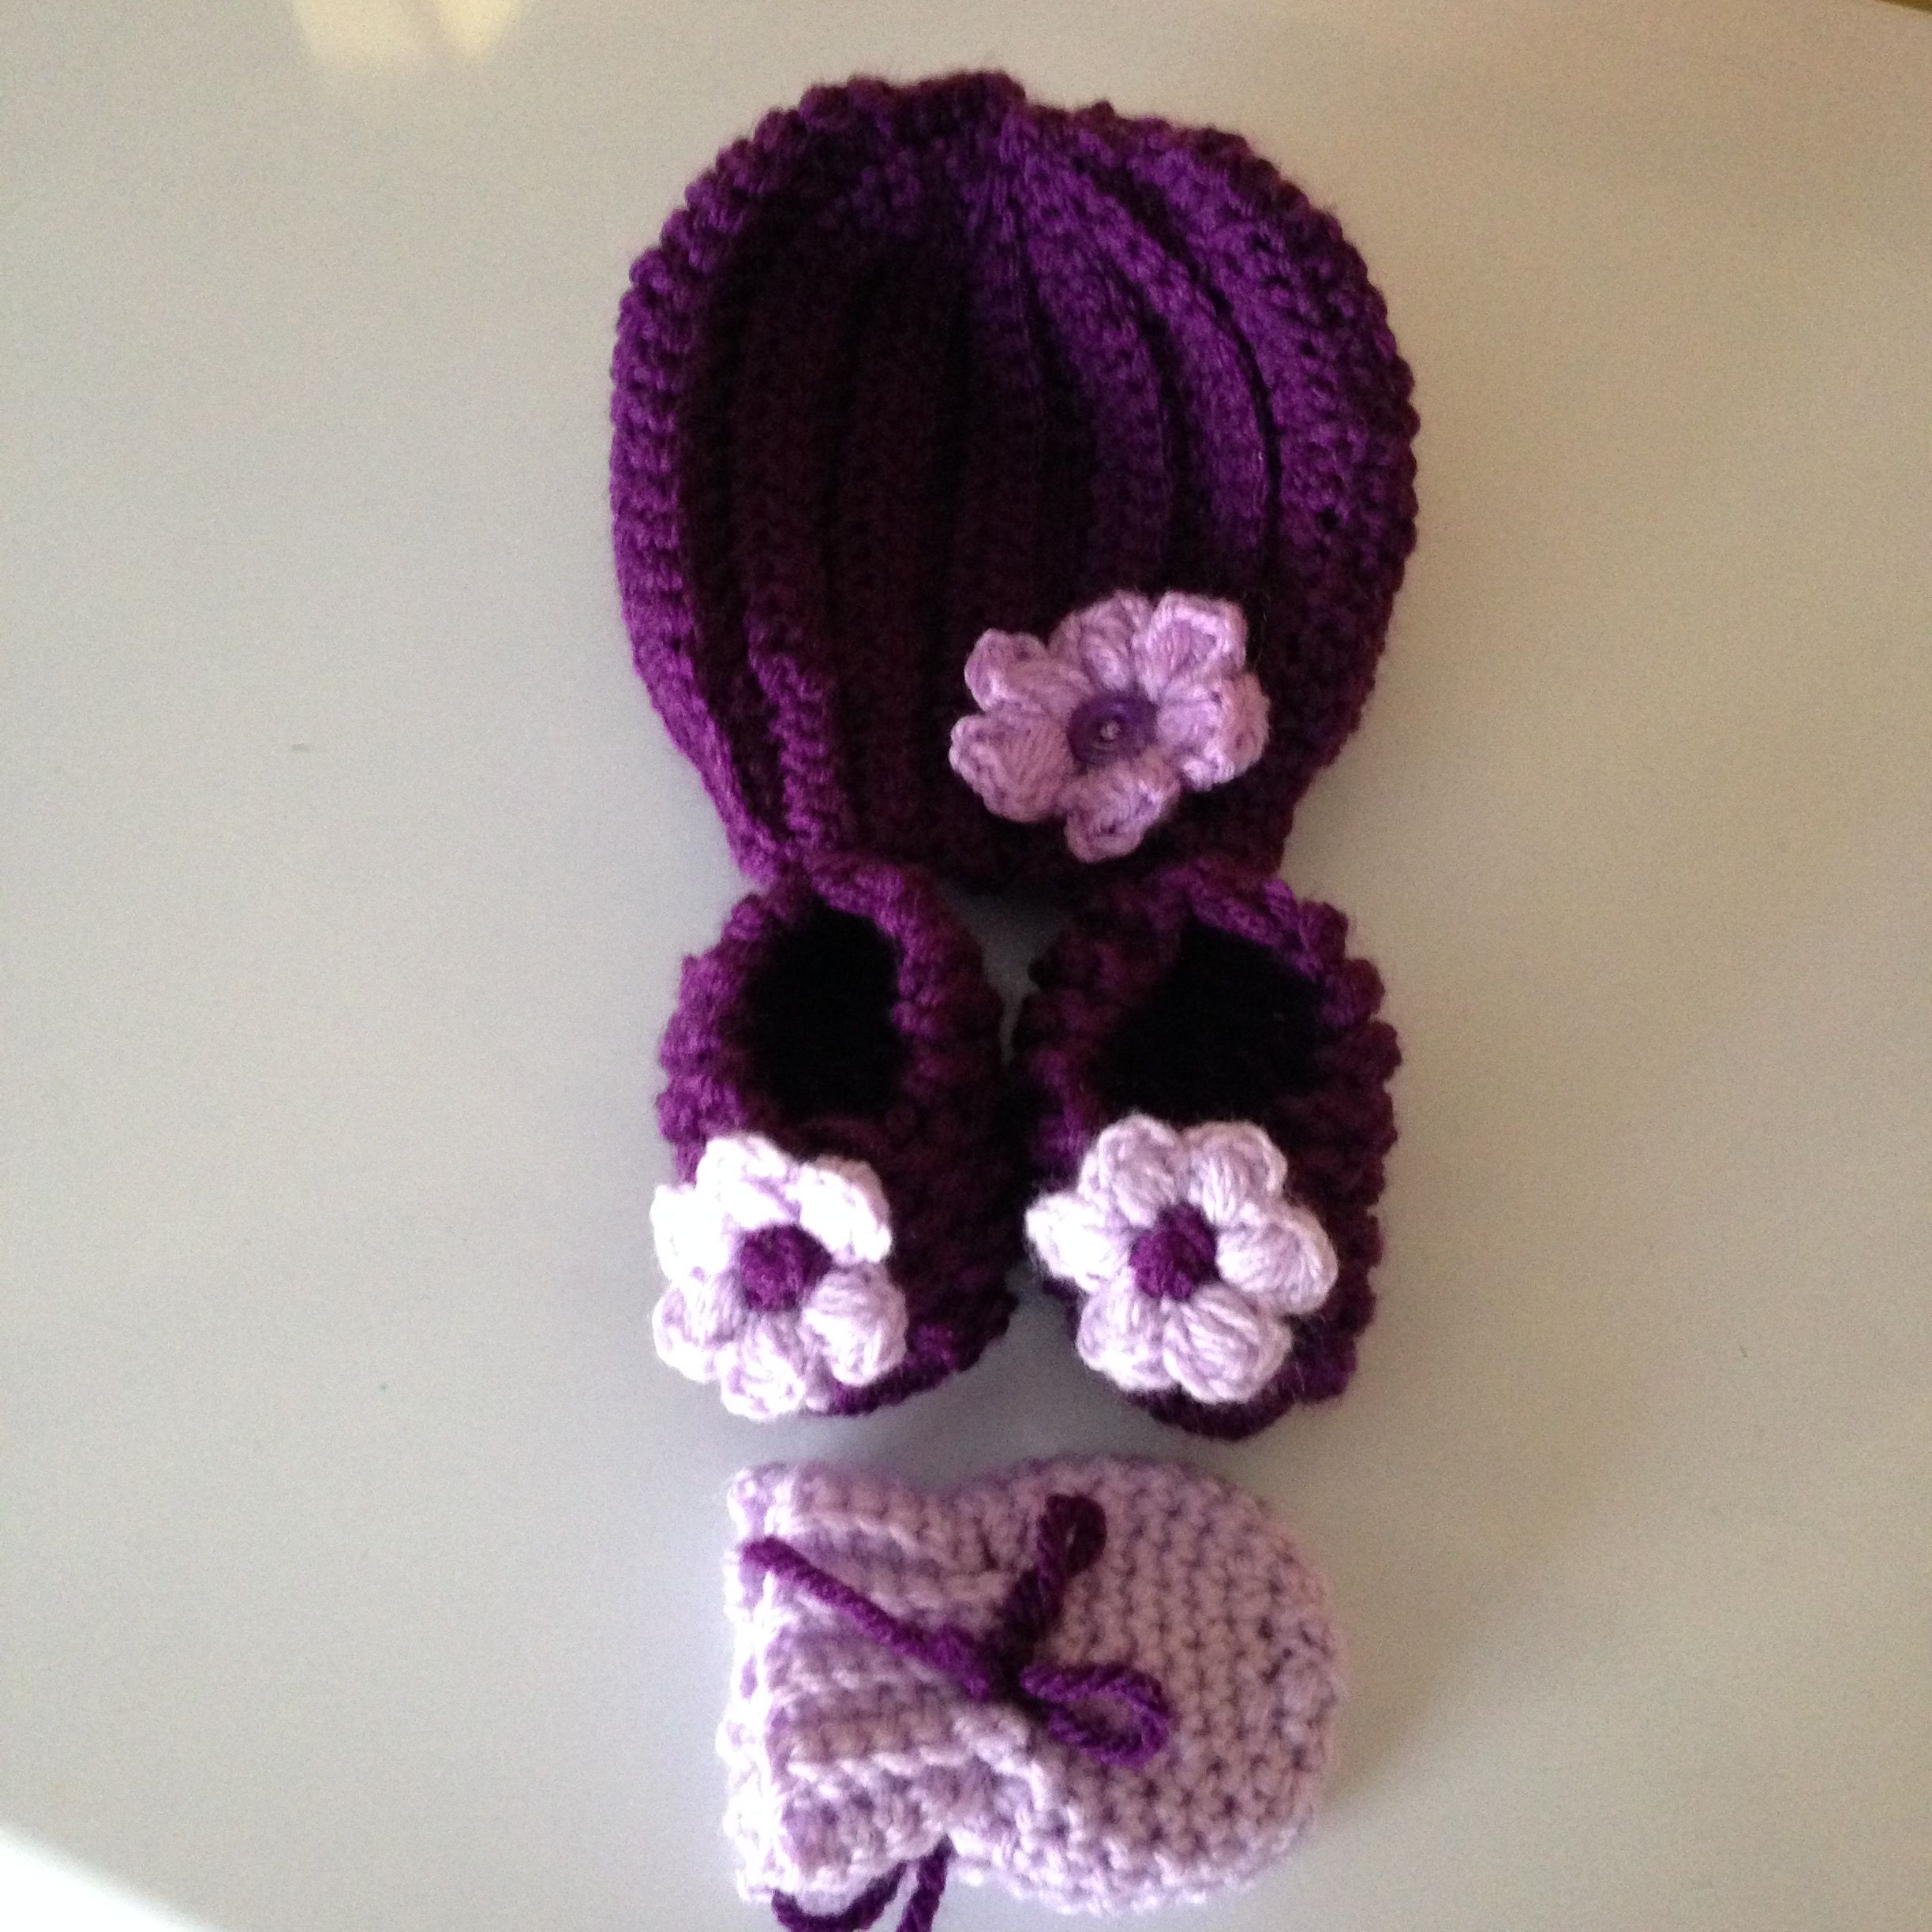 Crochet baby hat, booties and mitts and a cute crochet puff flower with a button center on hat.